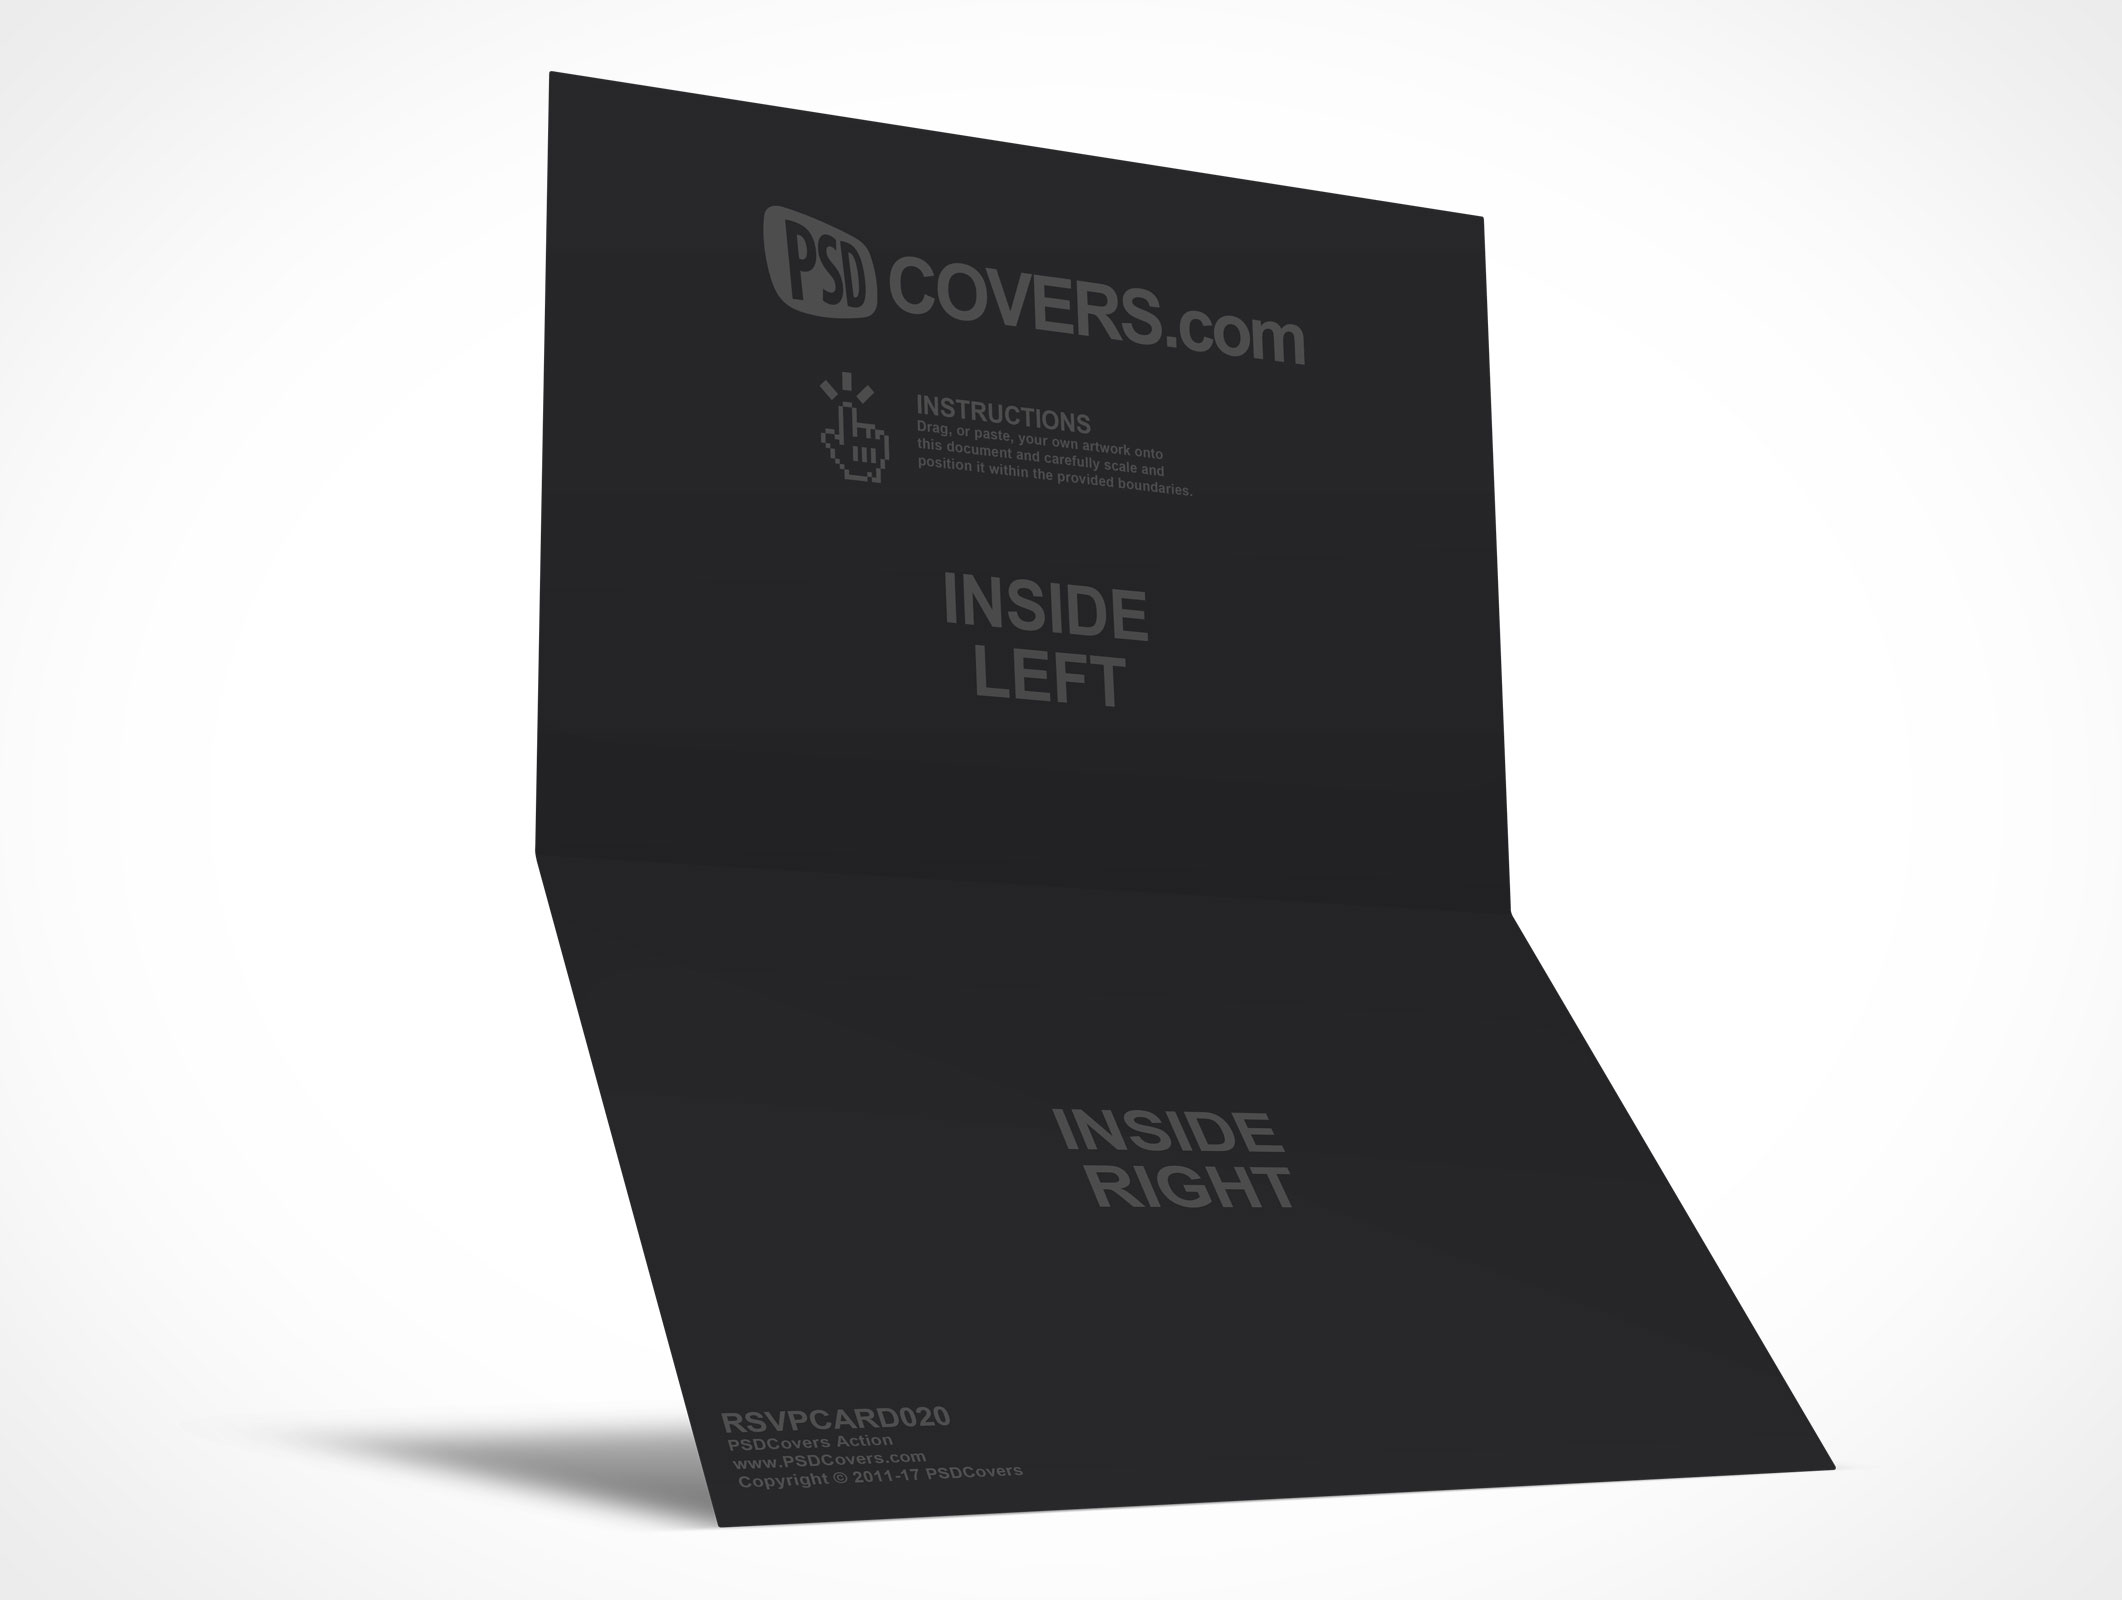 PSDCovers Upright RSVP Card Landscape